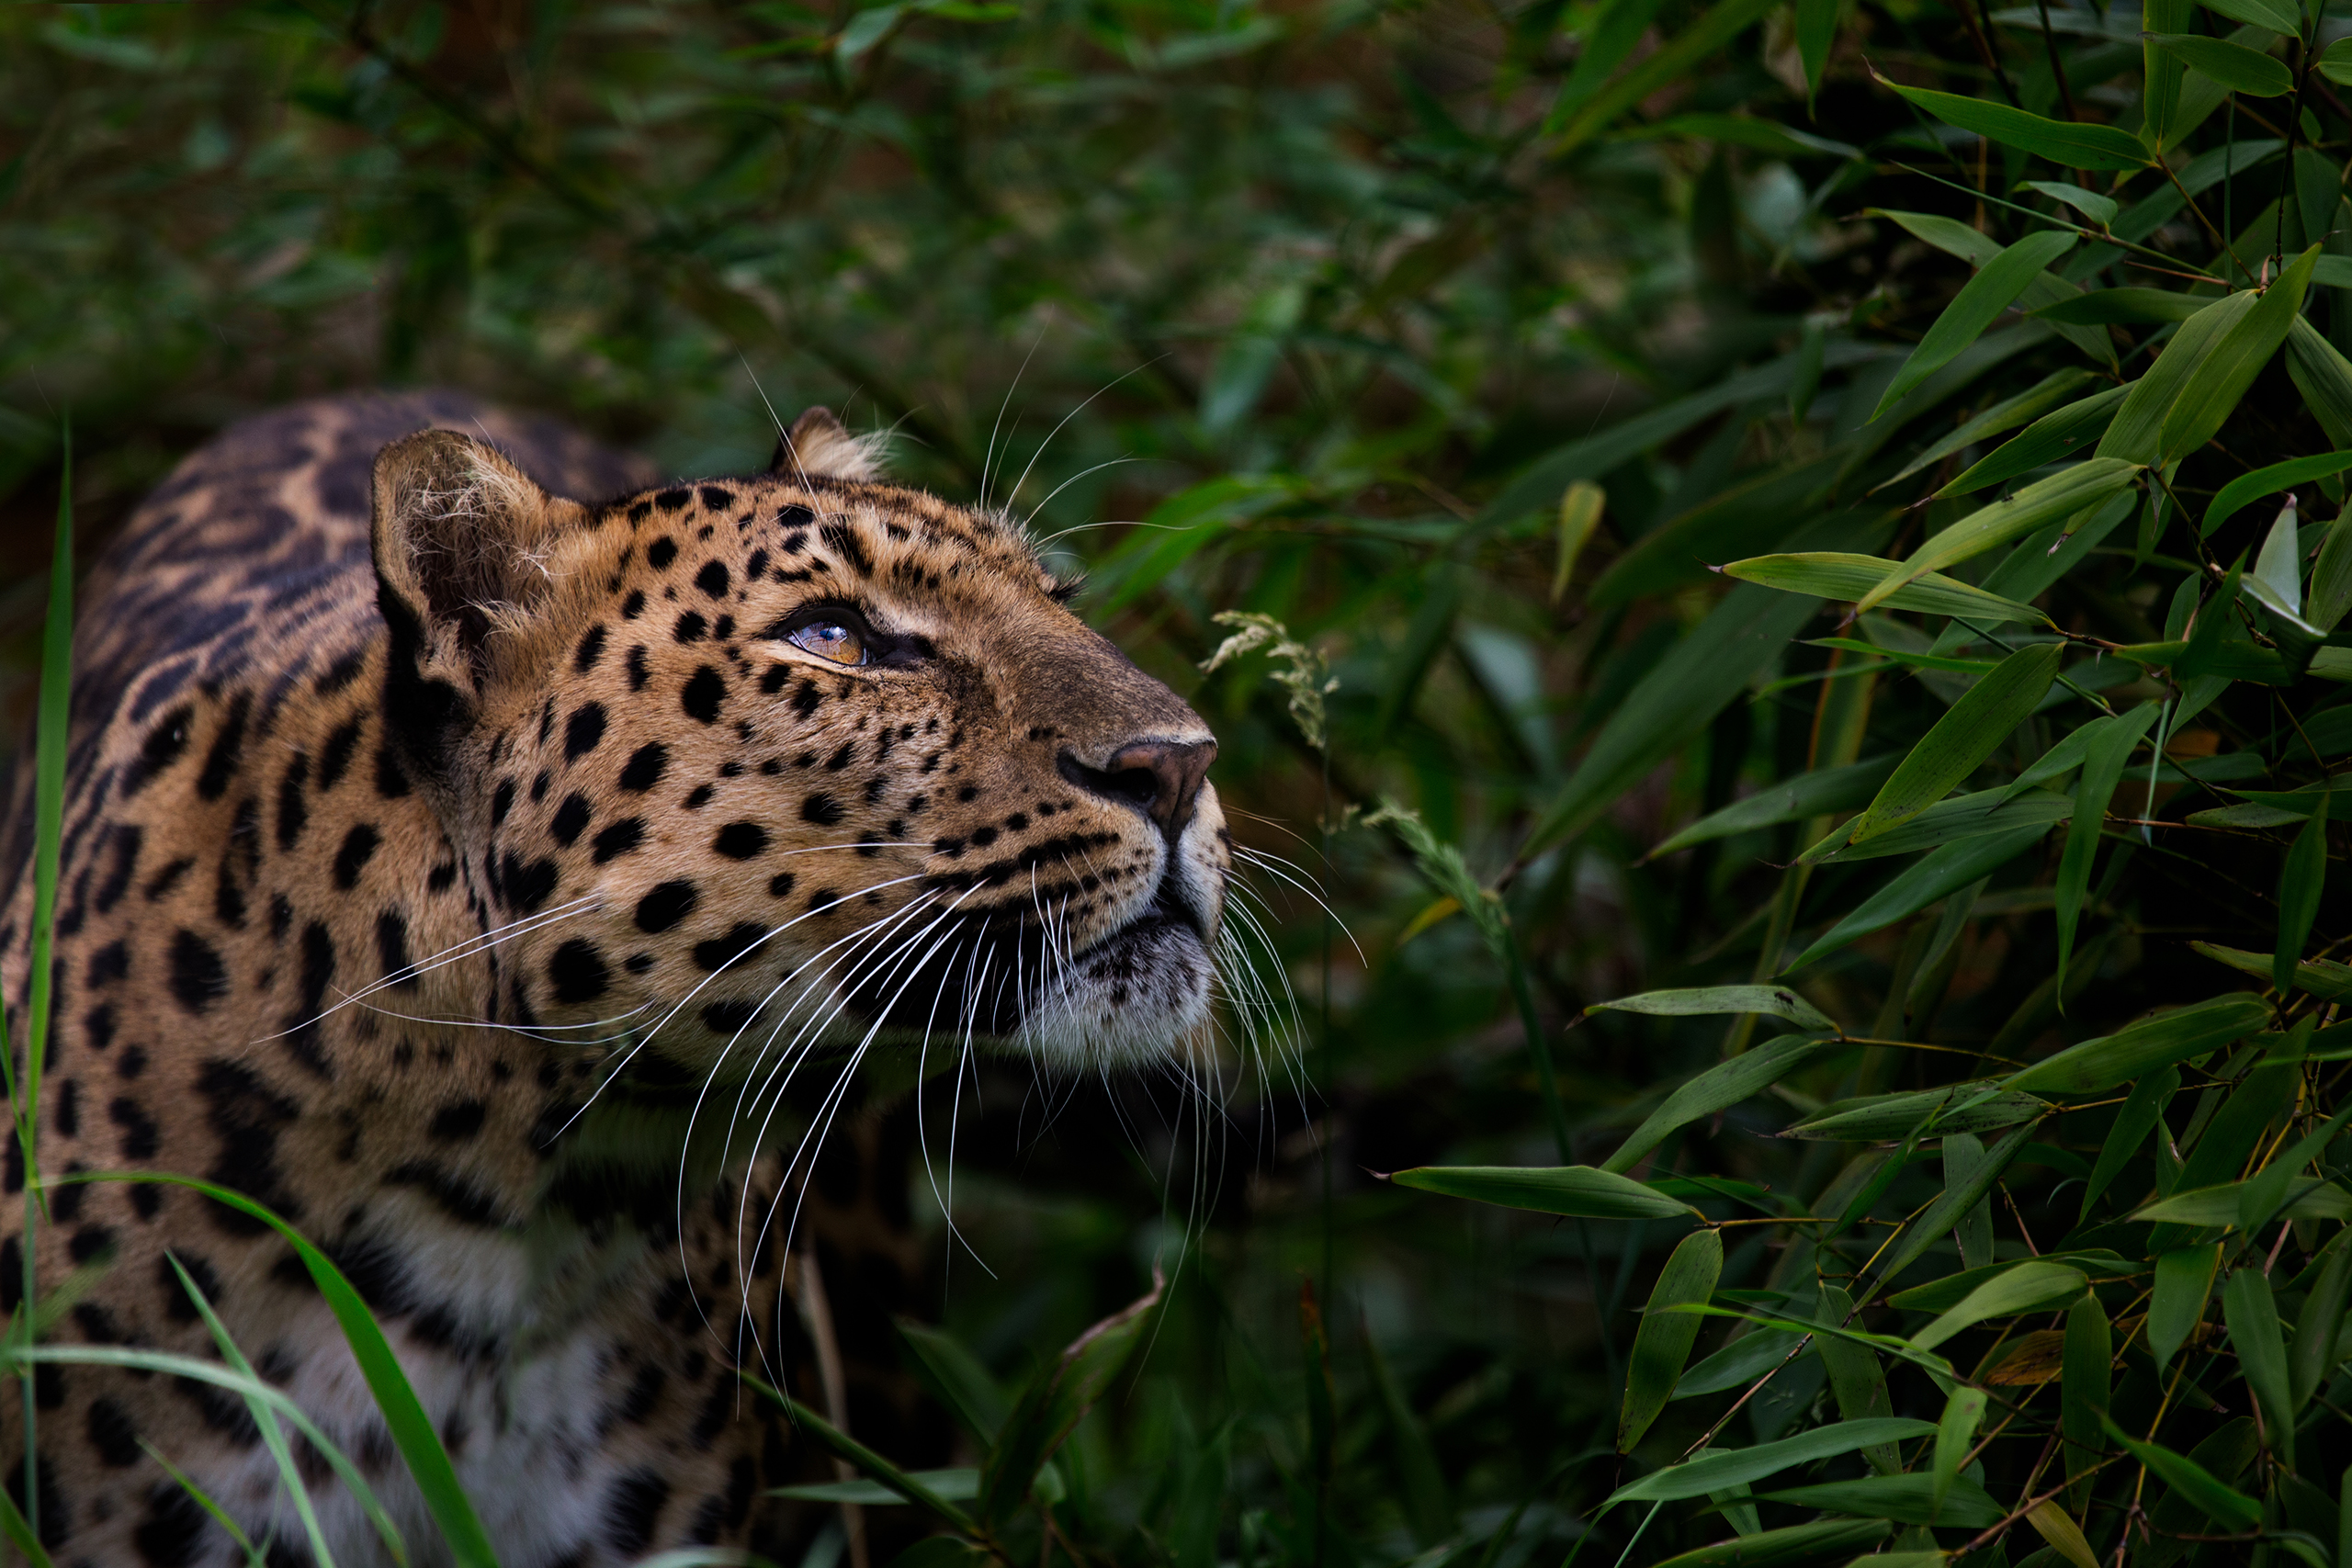 Amur Leopard, Russian Far East. A rare subspecies of leopard that has adapted to life in the temperate forests of northern Russia and China. They can run at speeds up to 37 mph and jump up to 10 ft. vertically. Due to poaching for its fur, only 60 individuals remain.